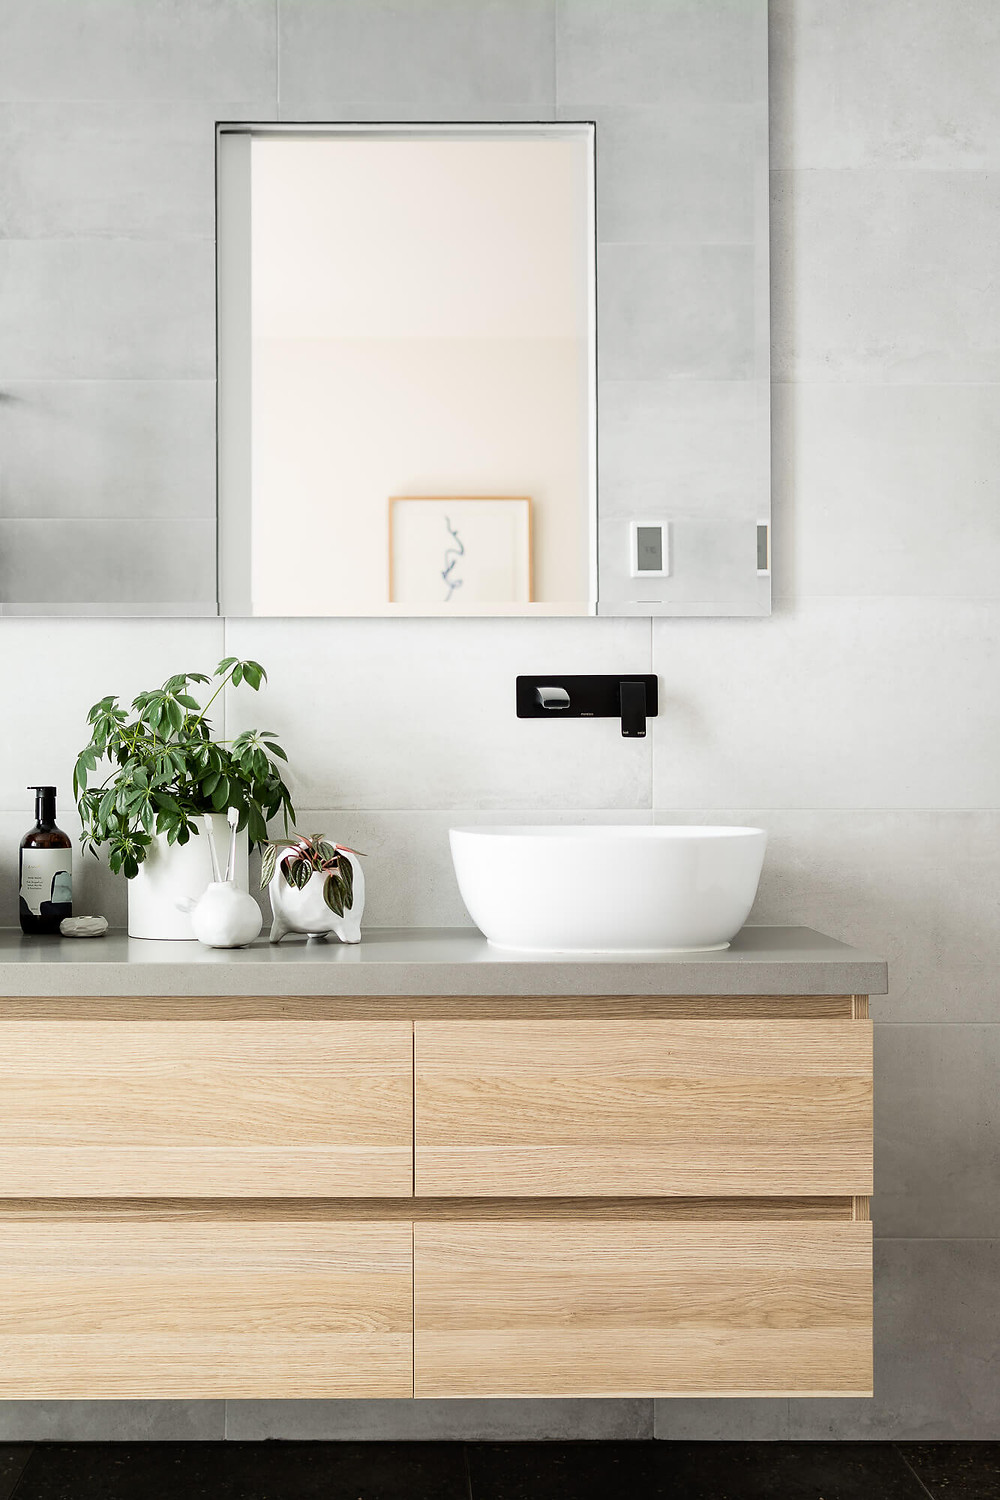 main bathroom with above counter basins and wall taps